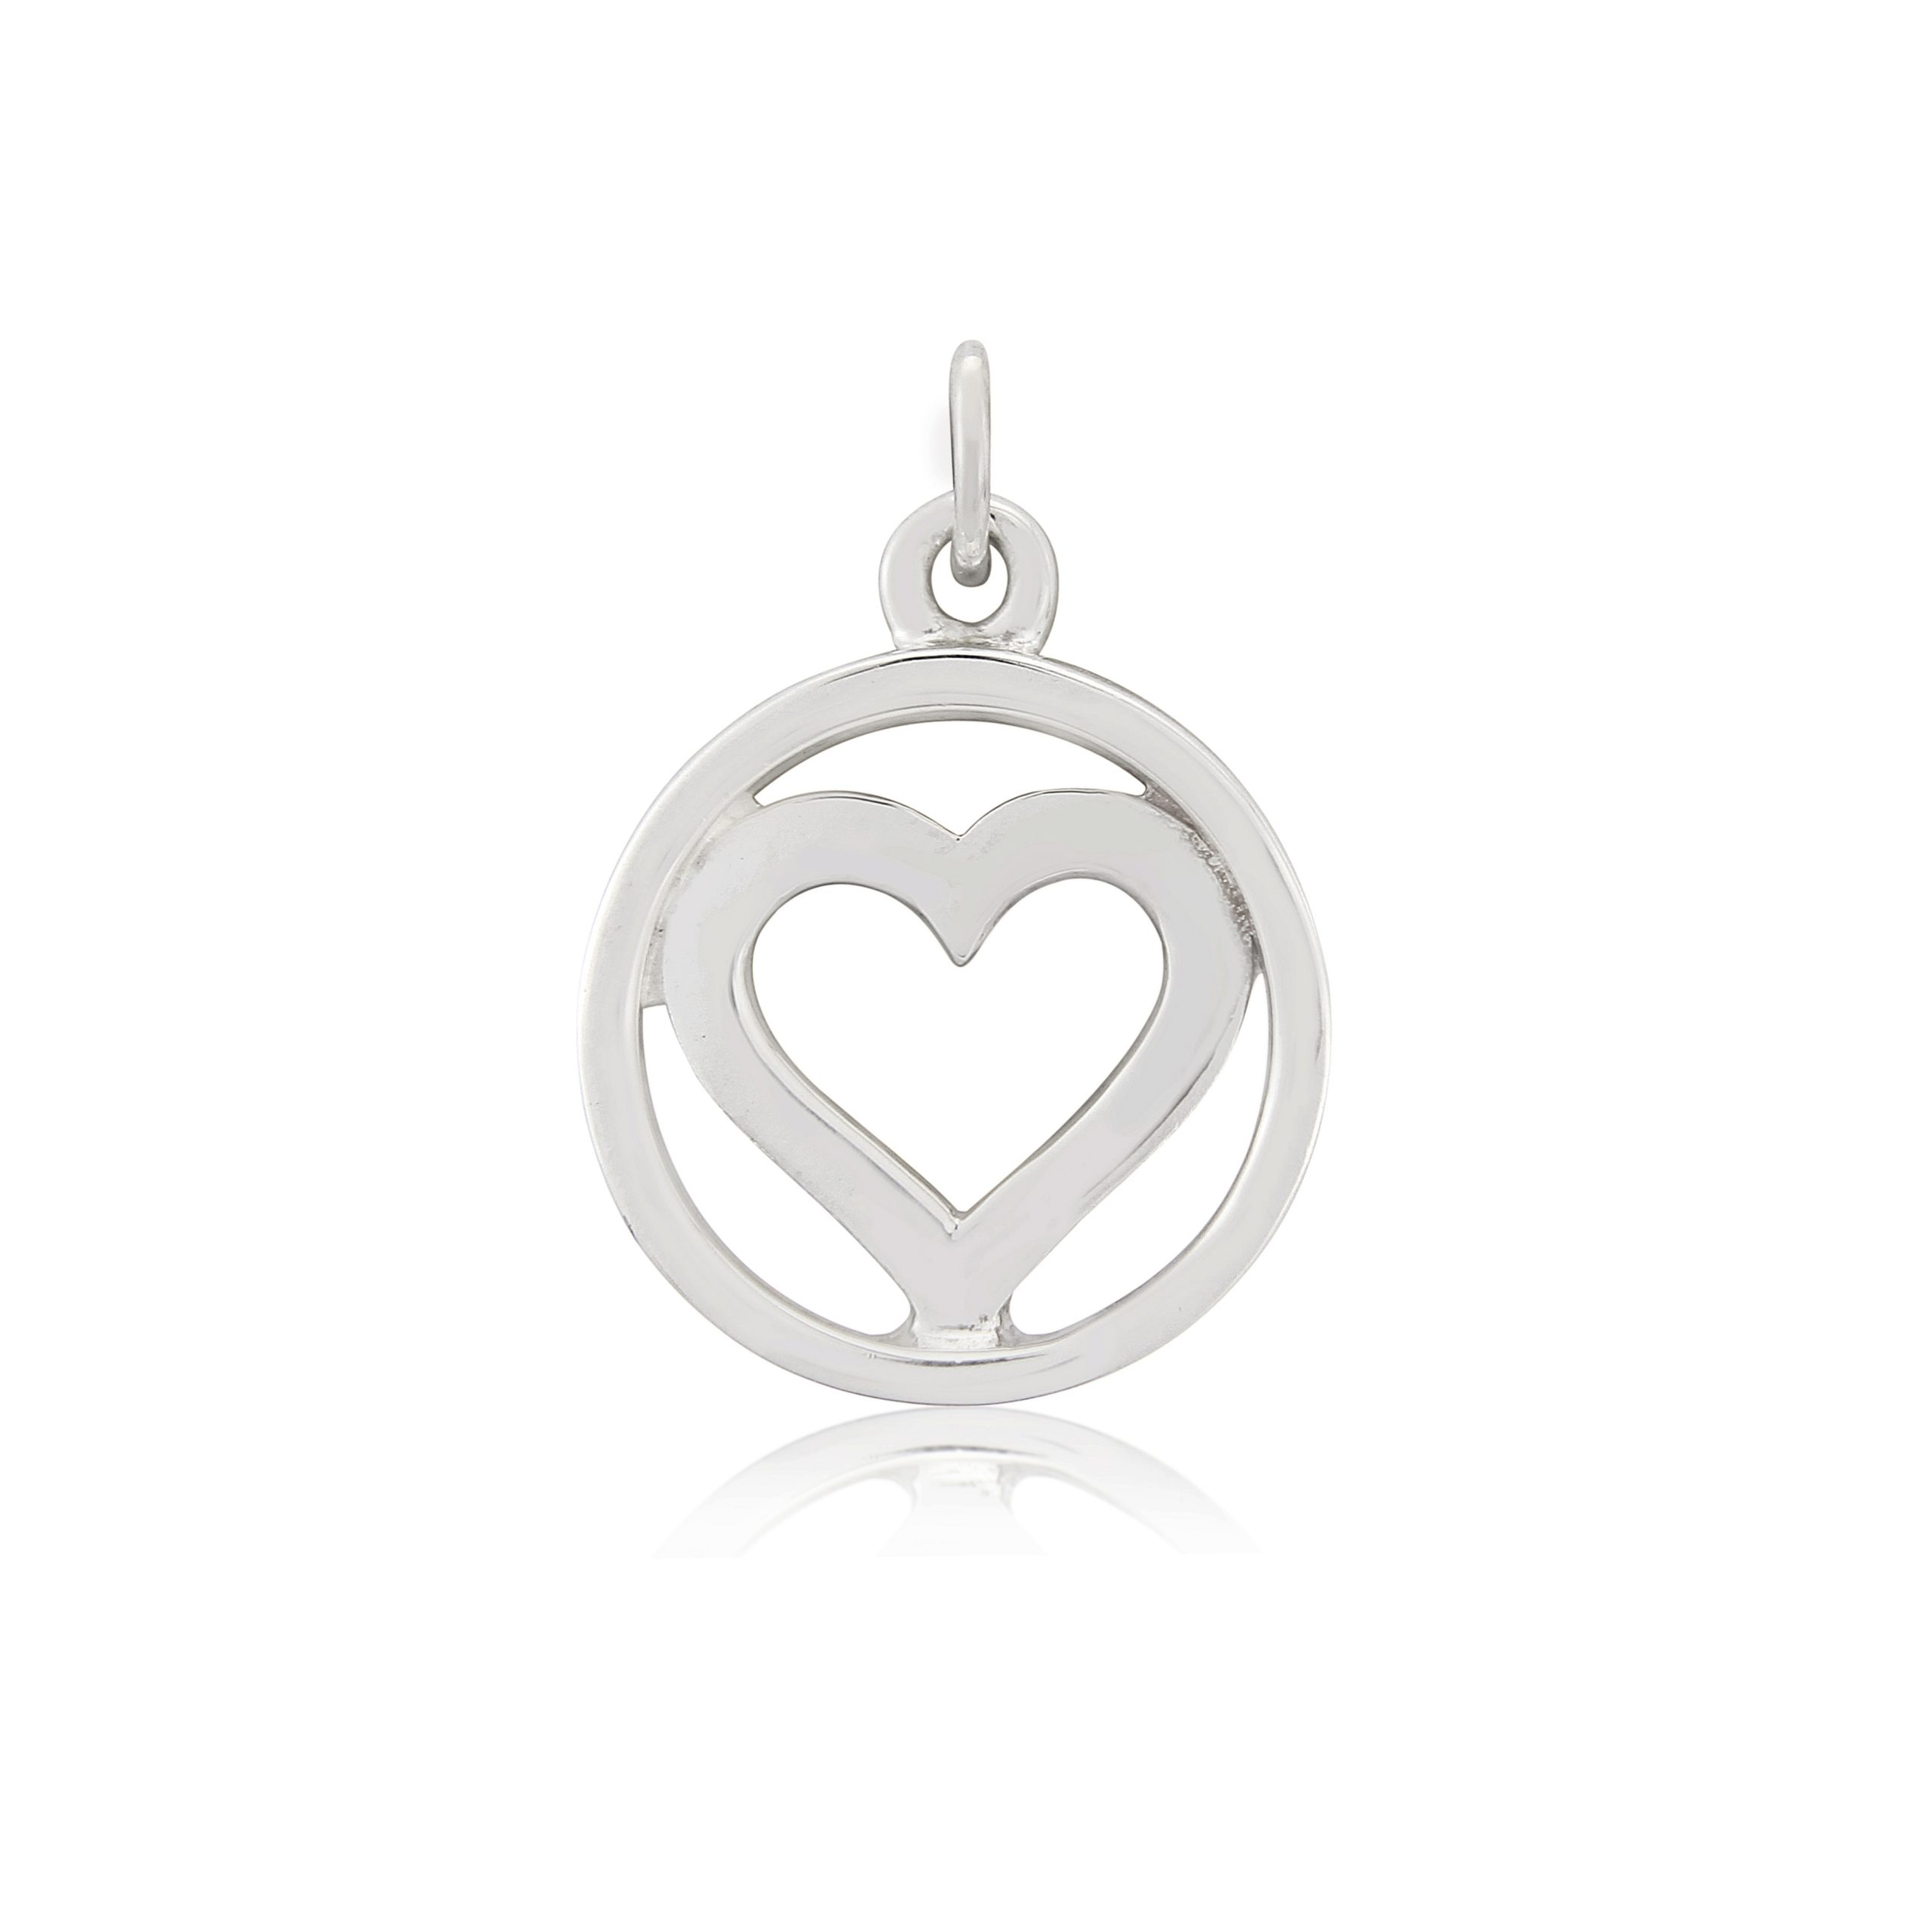 Sterling Silver Heart Charm / Pendant